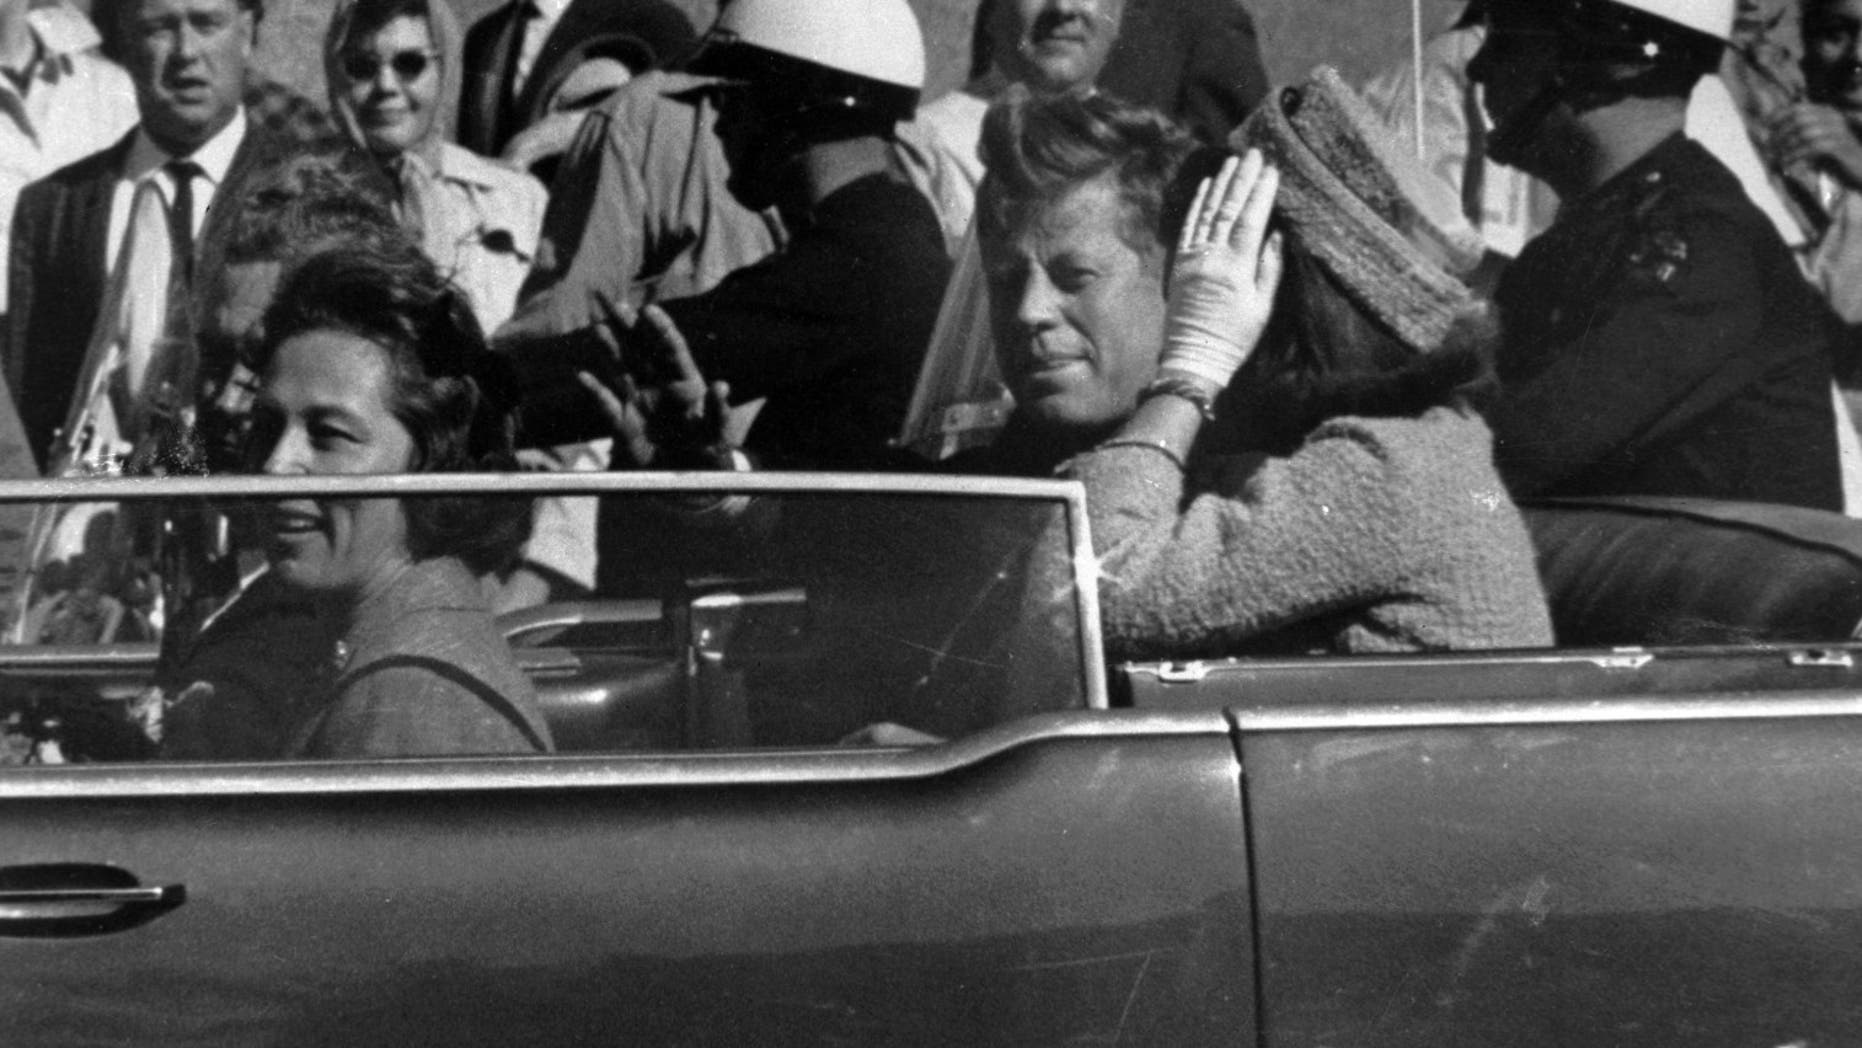 President John F. Kennedy is seen riding in motorcade approximately one minute before he was shot in Dallas, op Nov.. 22, 1963. In the car riding with Kennedy are Mrs. Jacqueline Kennedy, reg, Nellie Connally, links, and her husband, Goewerneur. John Connally of Texas. (Associated Press)